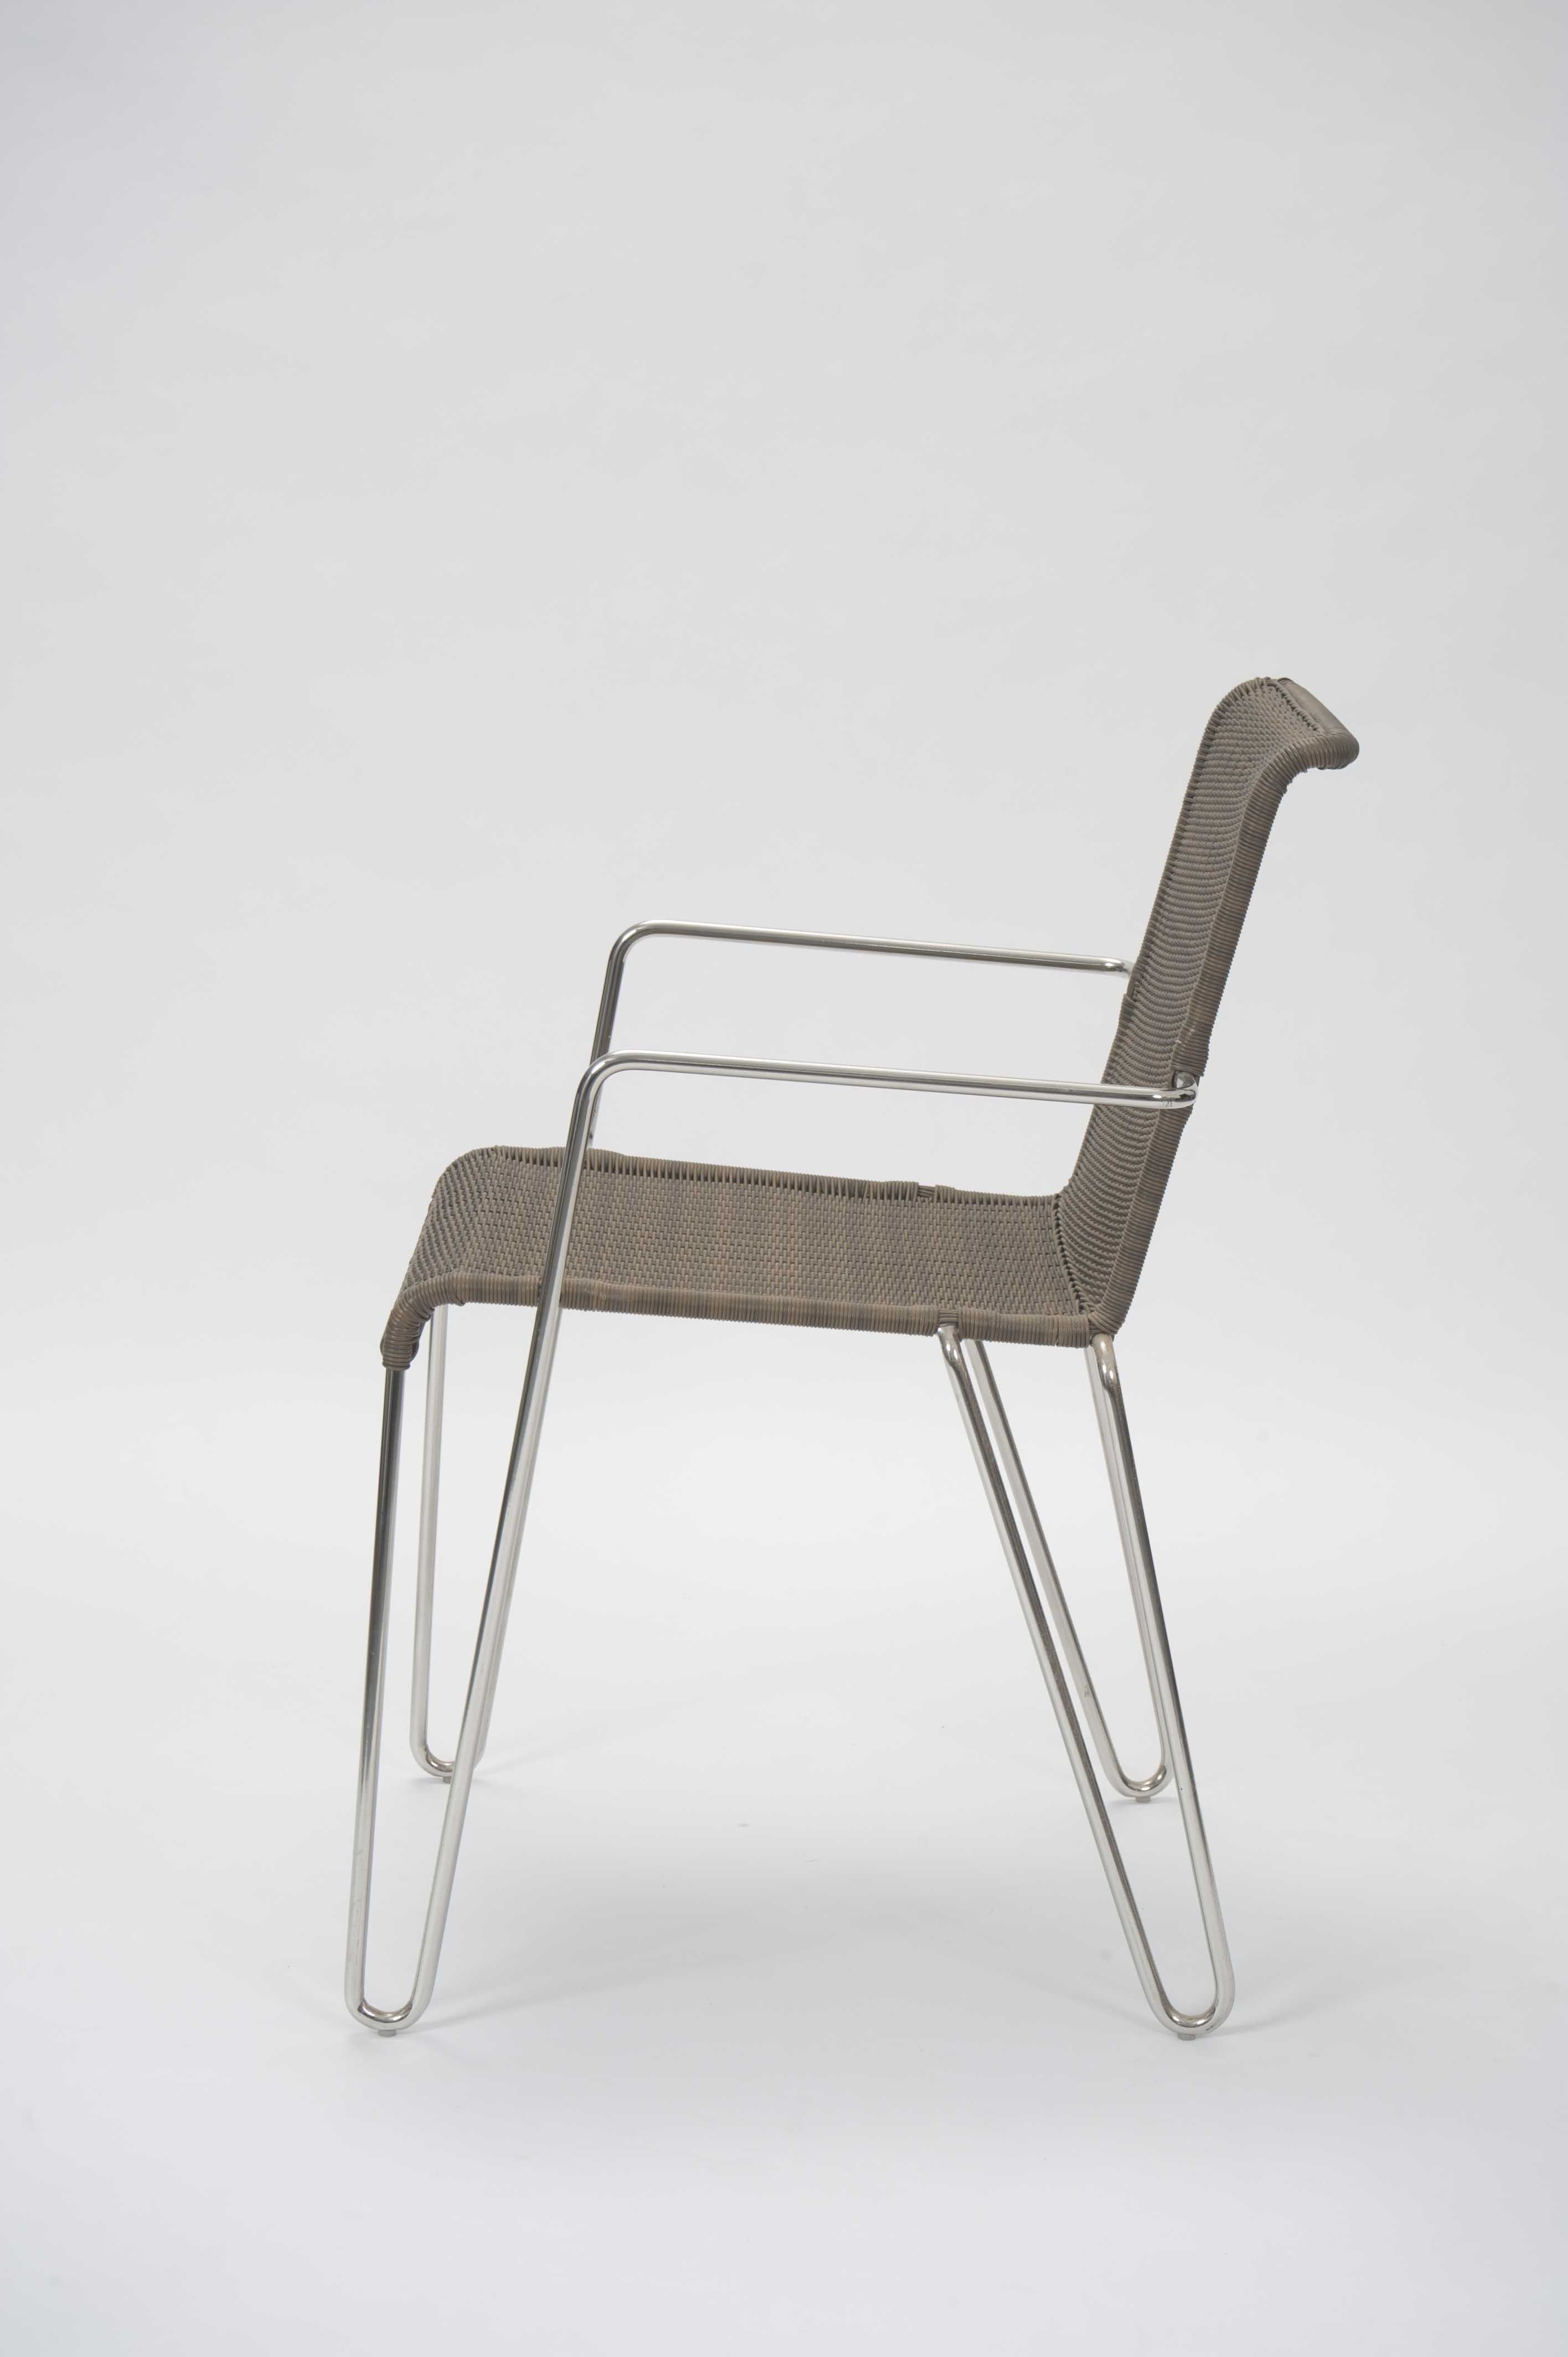 best outdoor dining chairs vanity chair with storage snap reversible by nicola staubli furniture